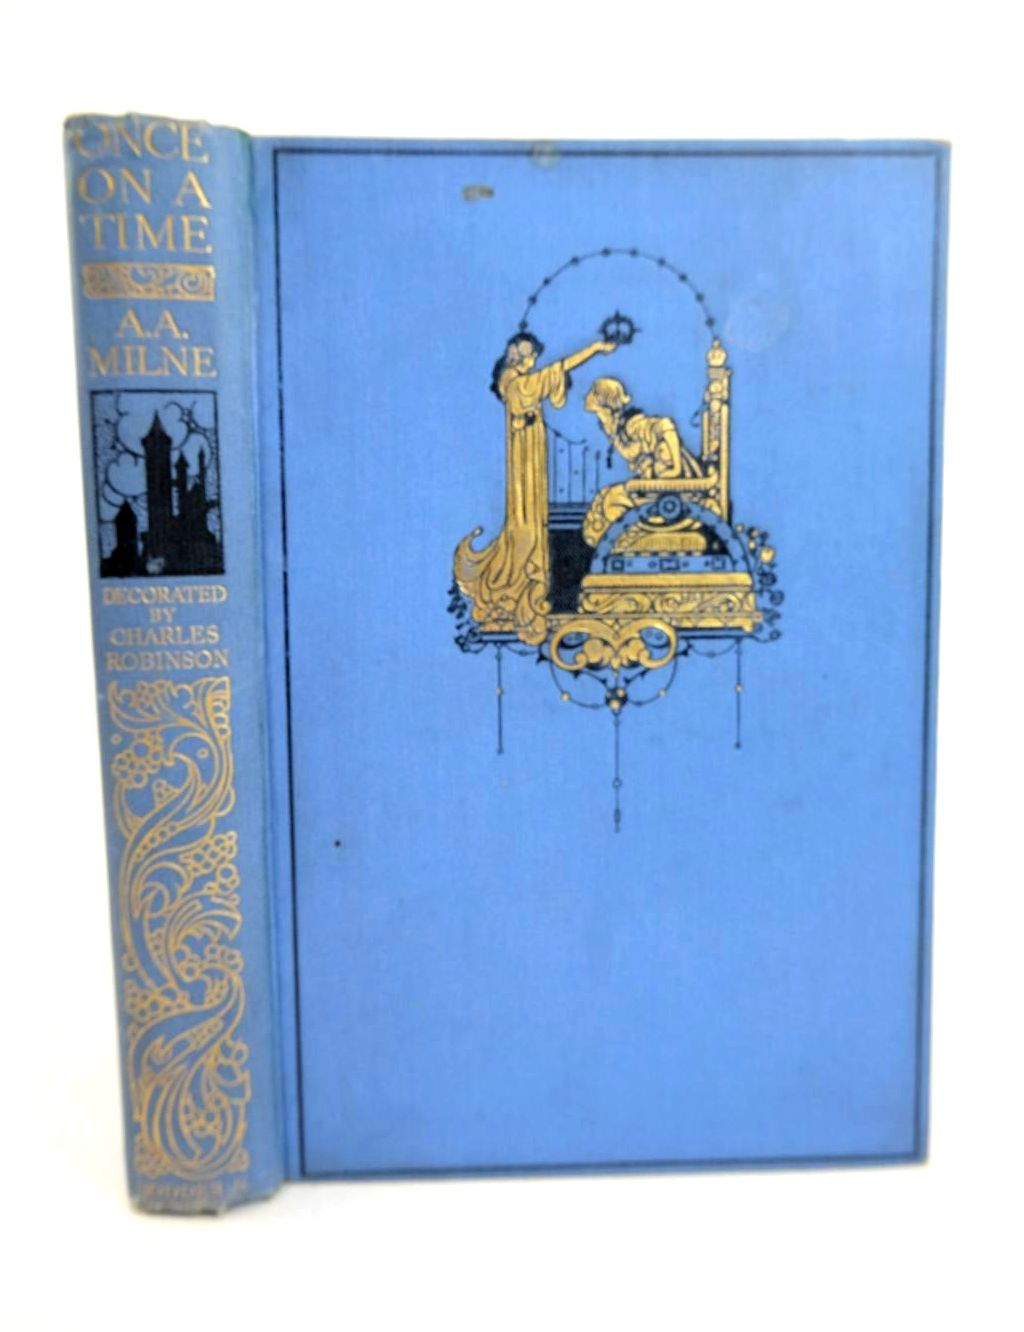 Photo of ONCE ON A TIME written by Milne, A.A. illustrated by Robinson, Charles published by Hodder & Stoughton (STOCK CODE: 1318726)  for sale by Stella & Rose's Books